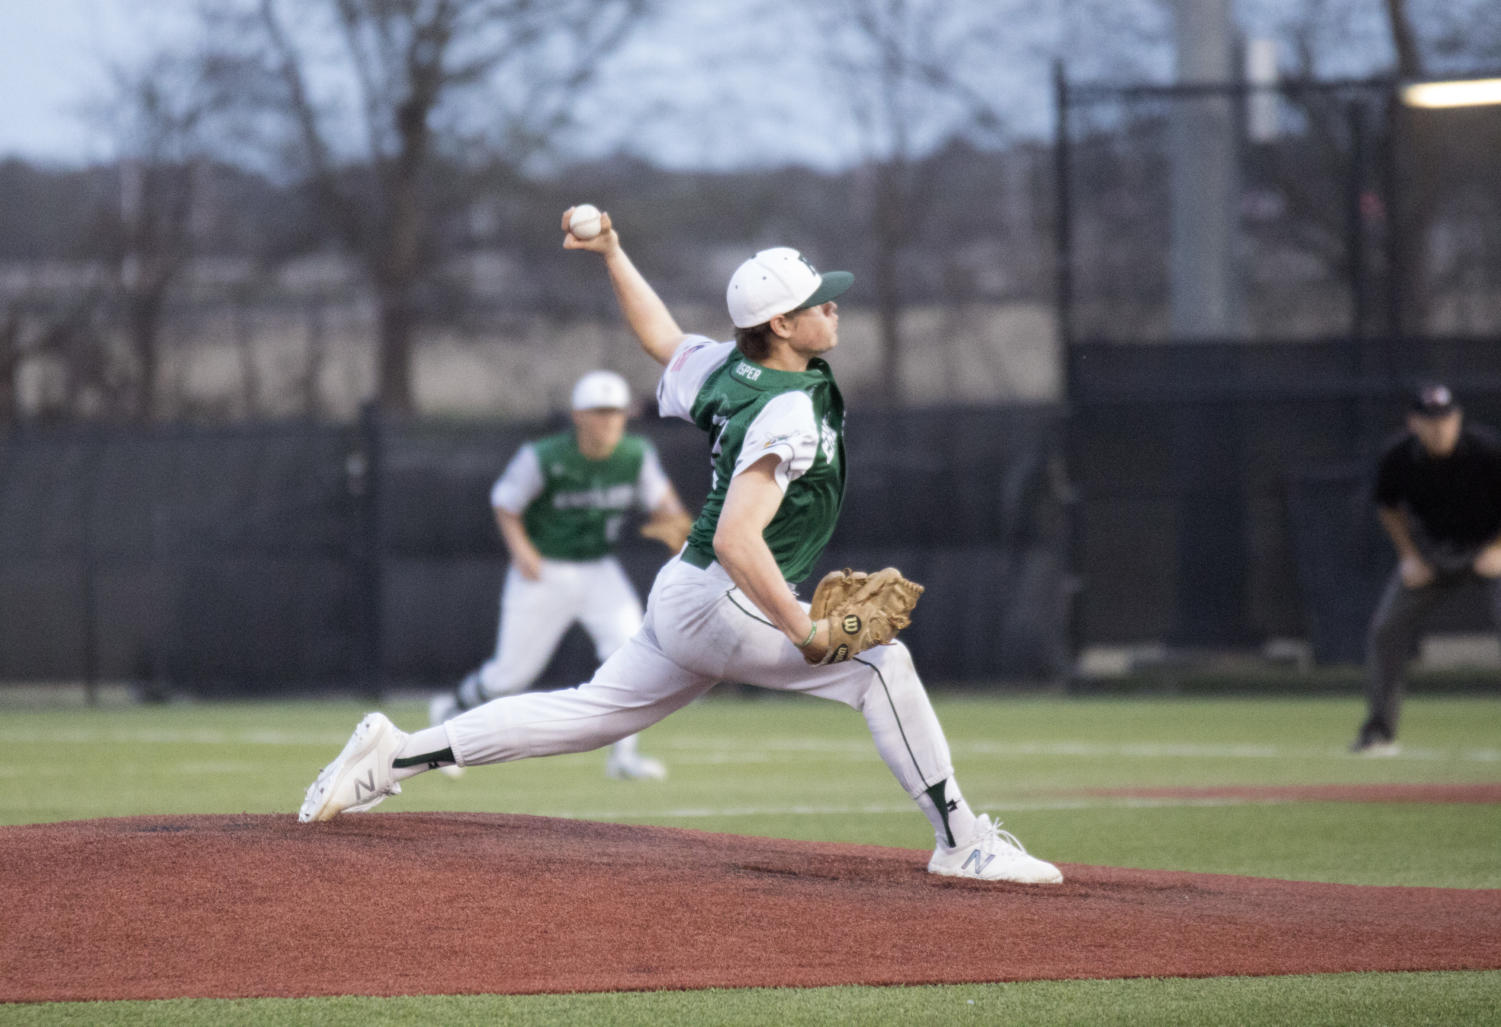 Jake Cosner, No. 2, hurls a pitch in a game against Plano East March 22. Cosner, a senior, is one of the starters on the Prosper pitching staff.